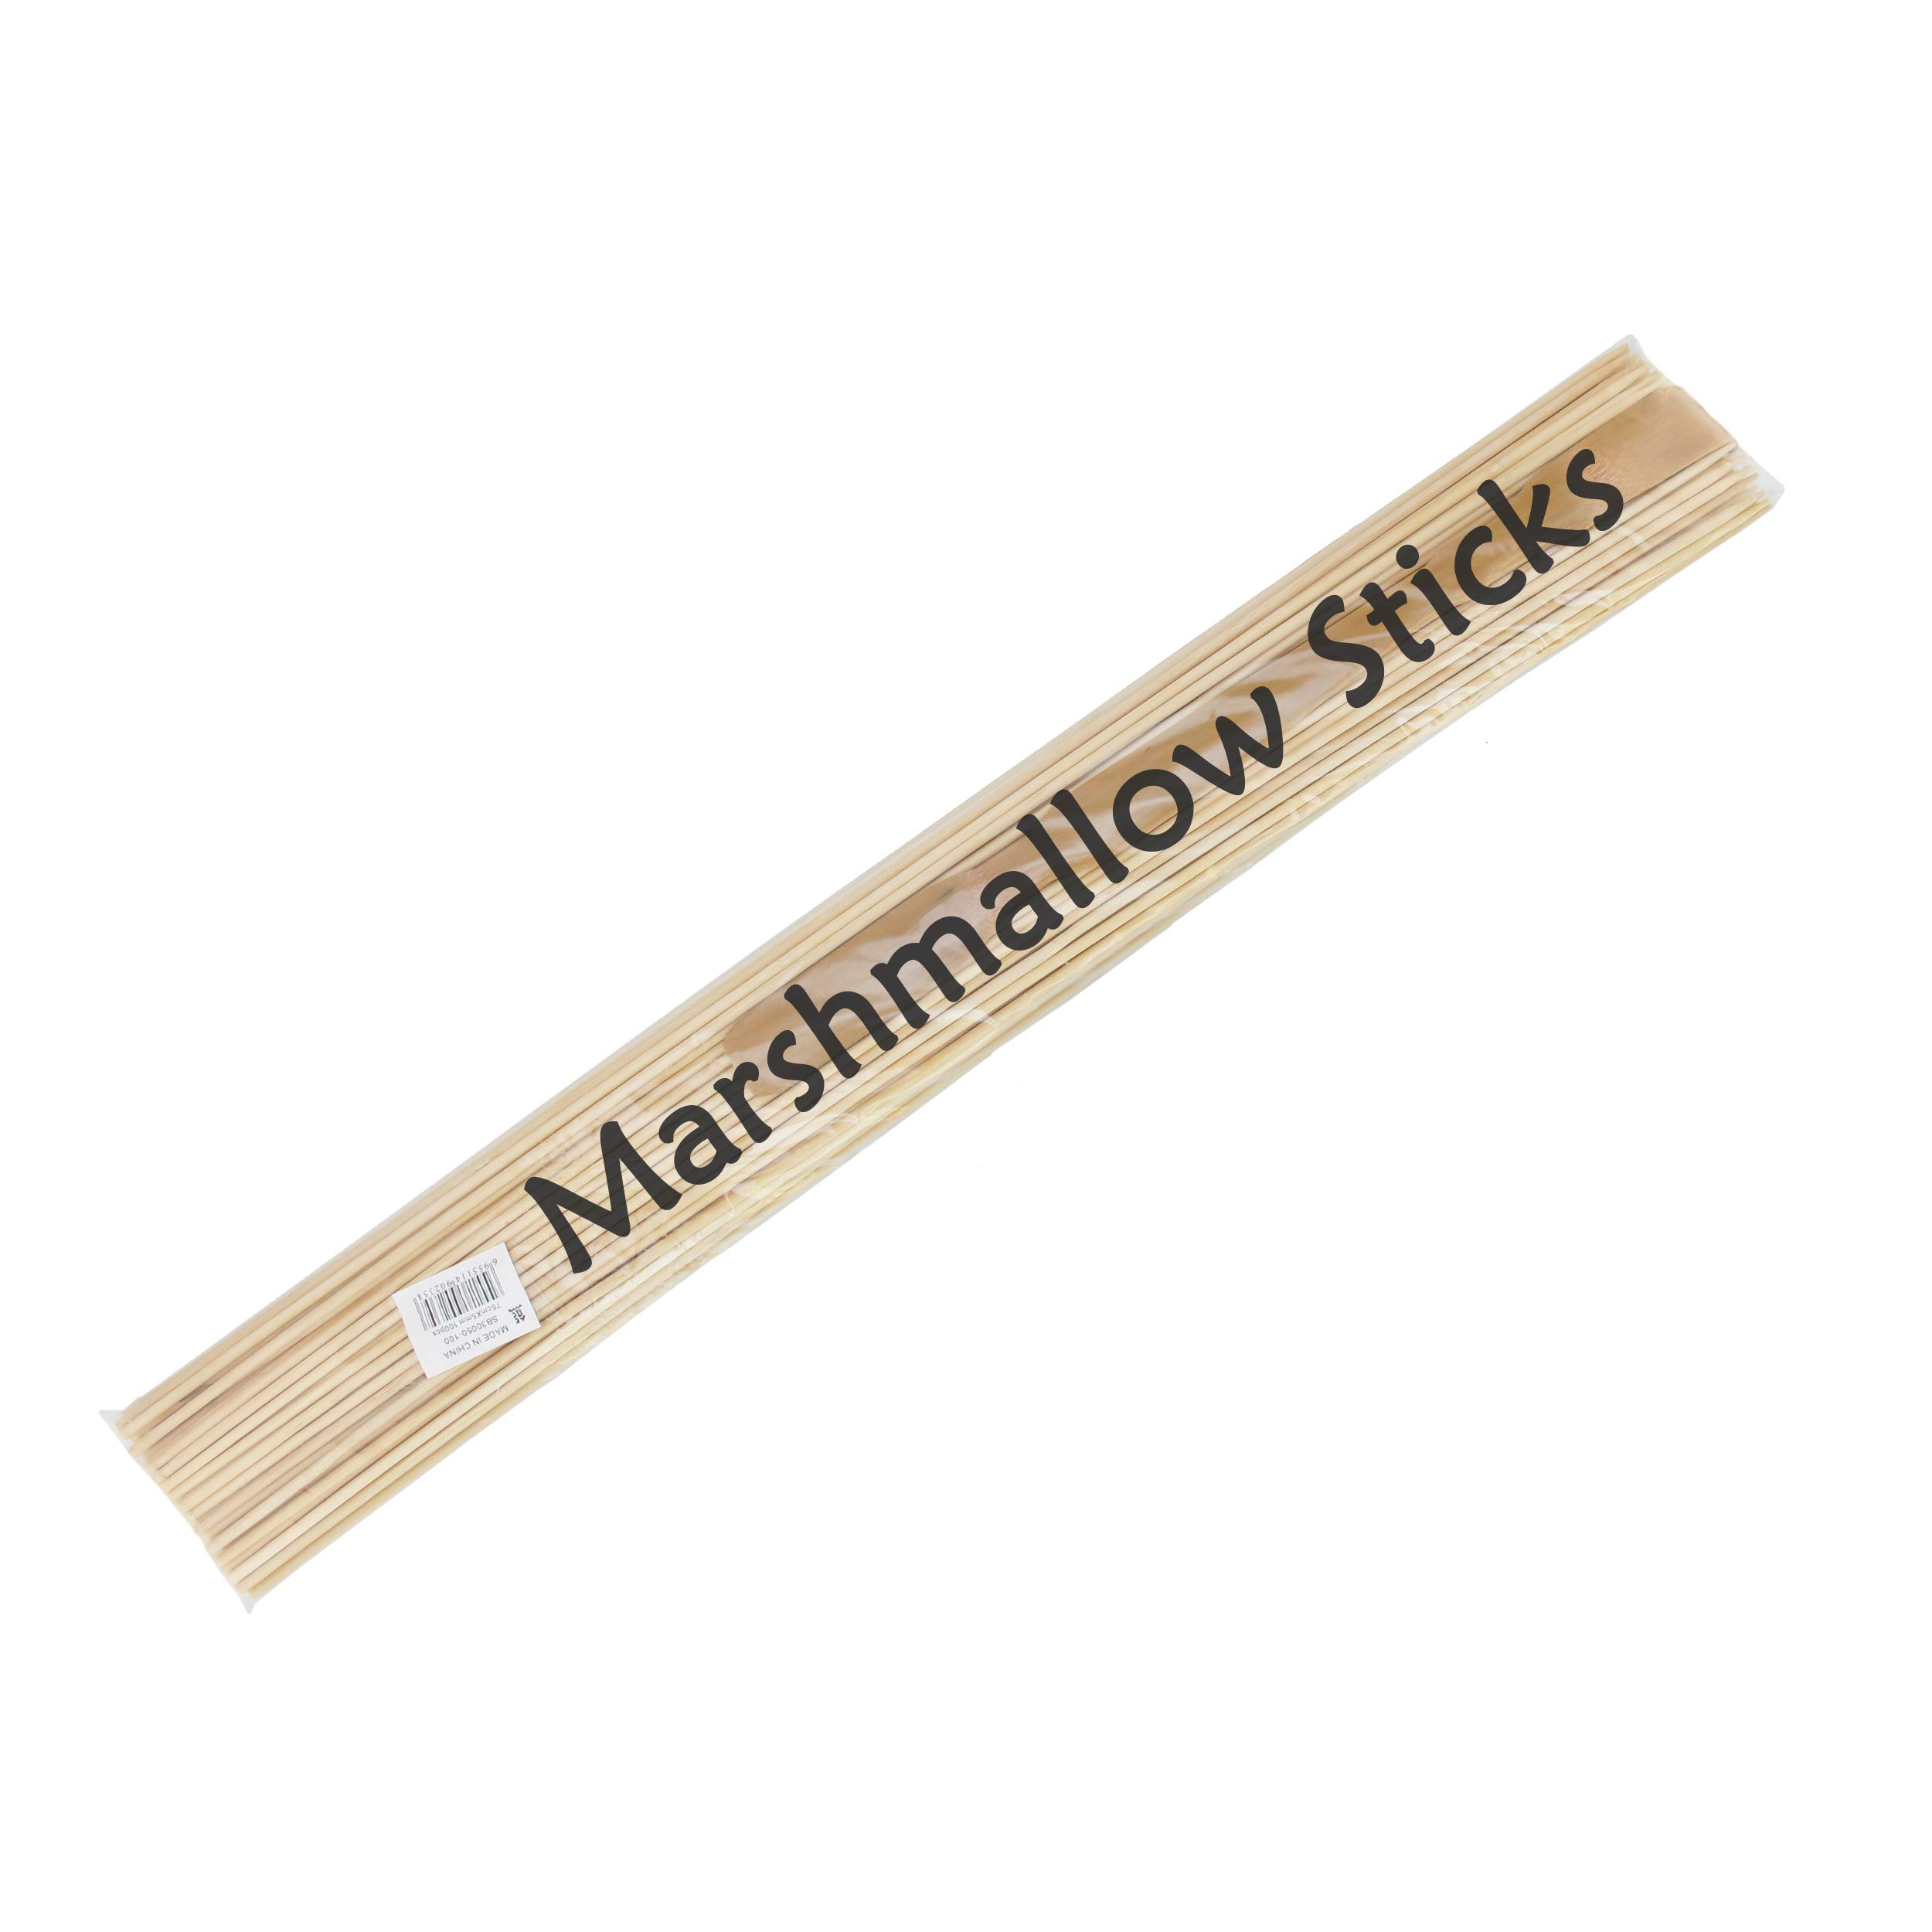 BambooMN Premium 30 Inch (2.5ft) 5mm Thick Safe Extra Long Multipurpose Marshmallow S'Mores Roasting Bamboo Sticks Skewers, 300 Pieces Perfect for Camping or Outdoor Party, Garden Sticks